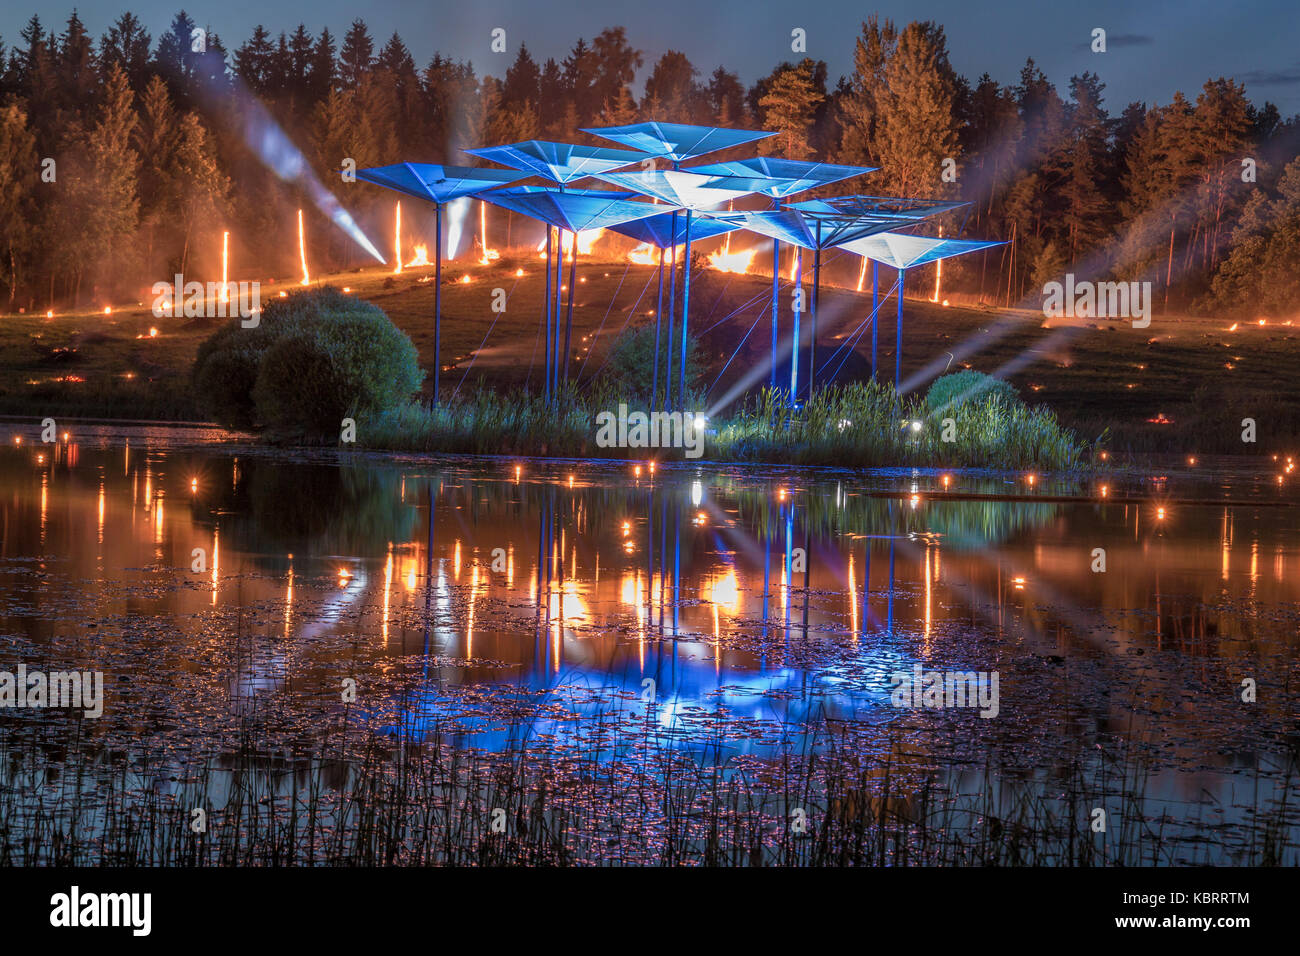 Burning fire in the background with searching lights and reflection from the lake - Stock Image